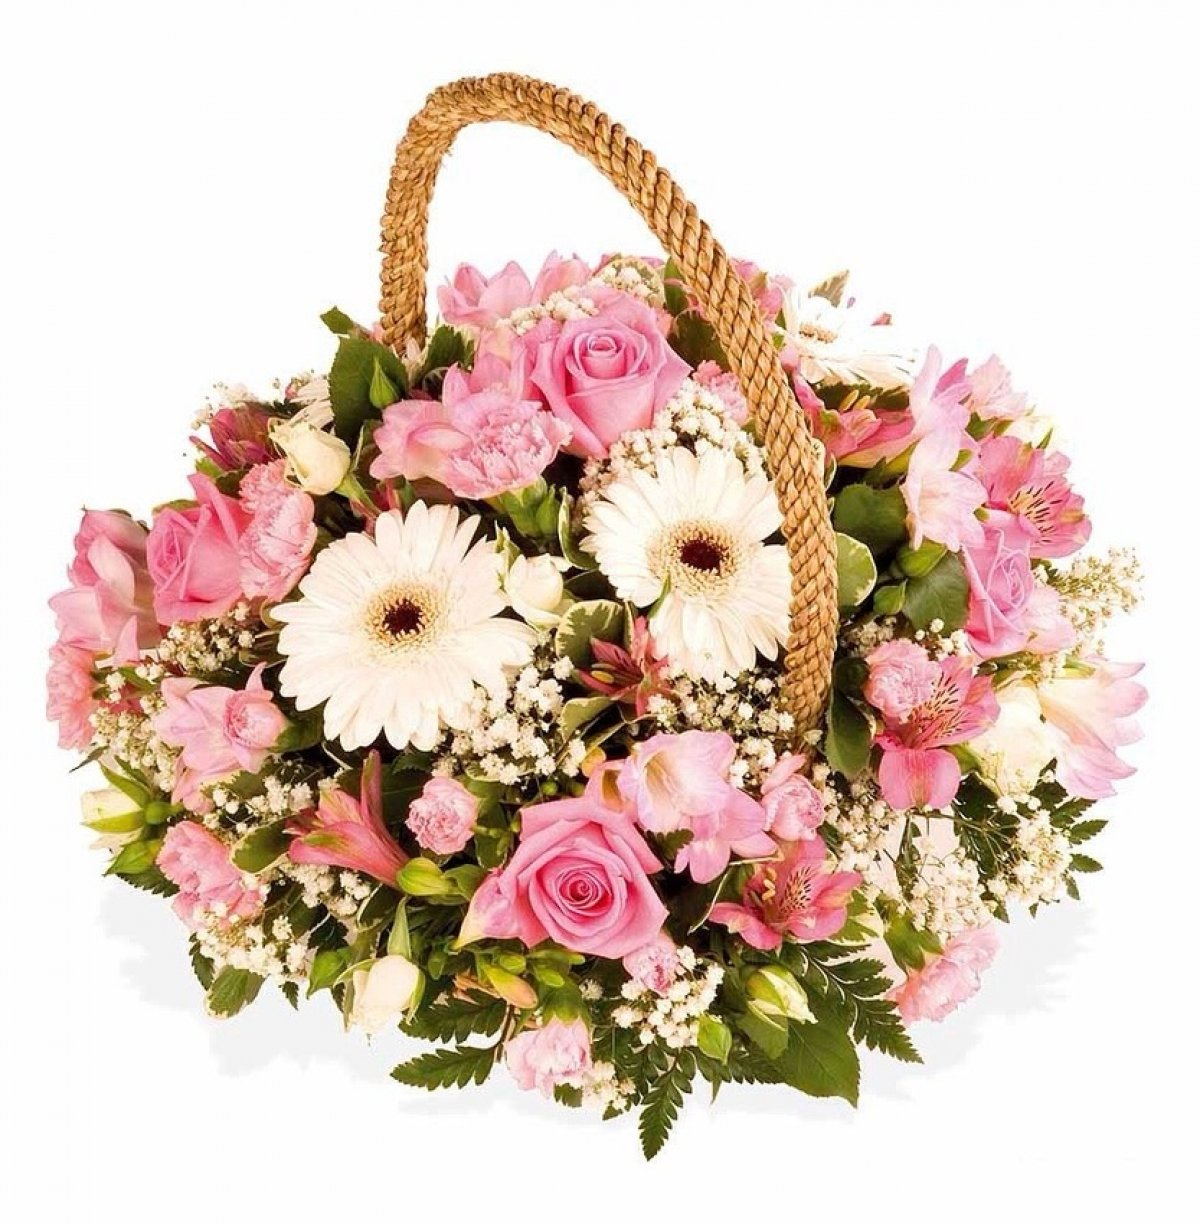 The freshest flowers arranged in an elegant hand held wicker basket!